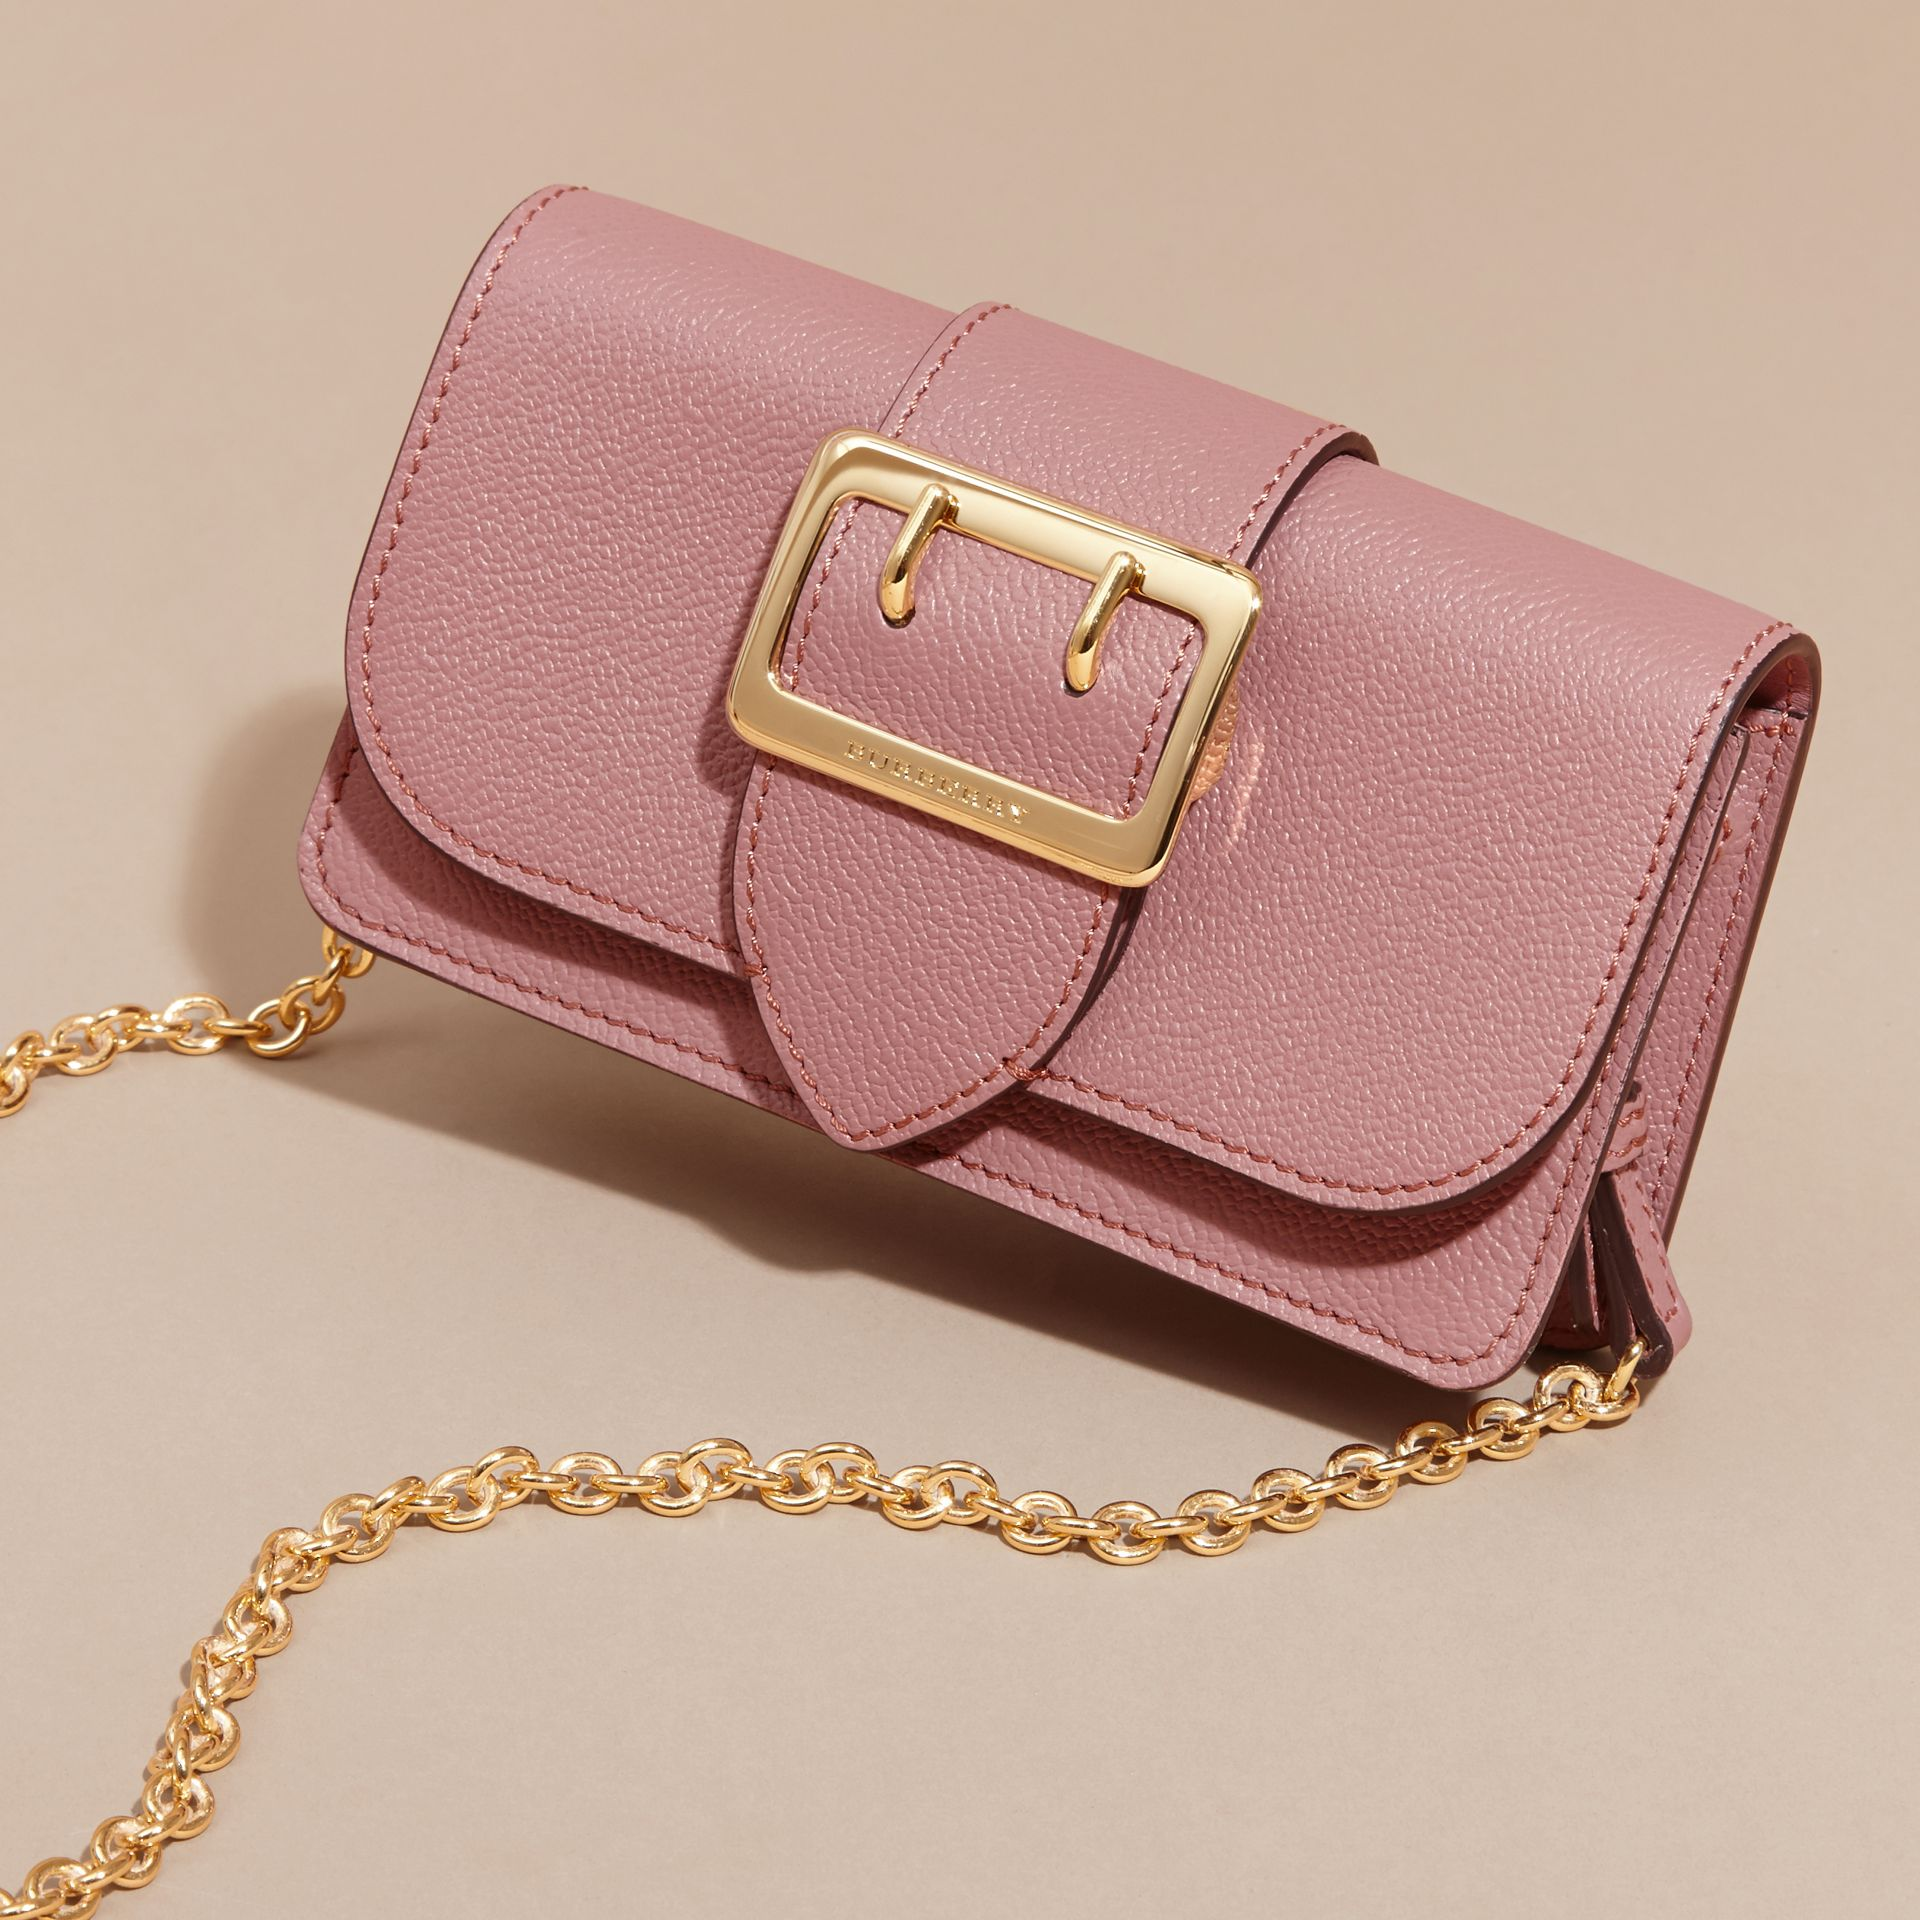 The Mini Buckle Bag in Grainy Leather in Dusty Pink - Women | Burberry Canada - gallery image 8